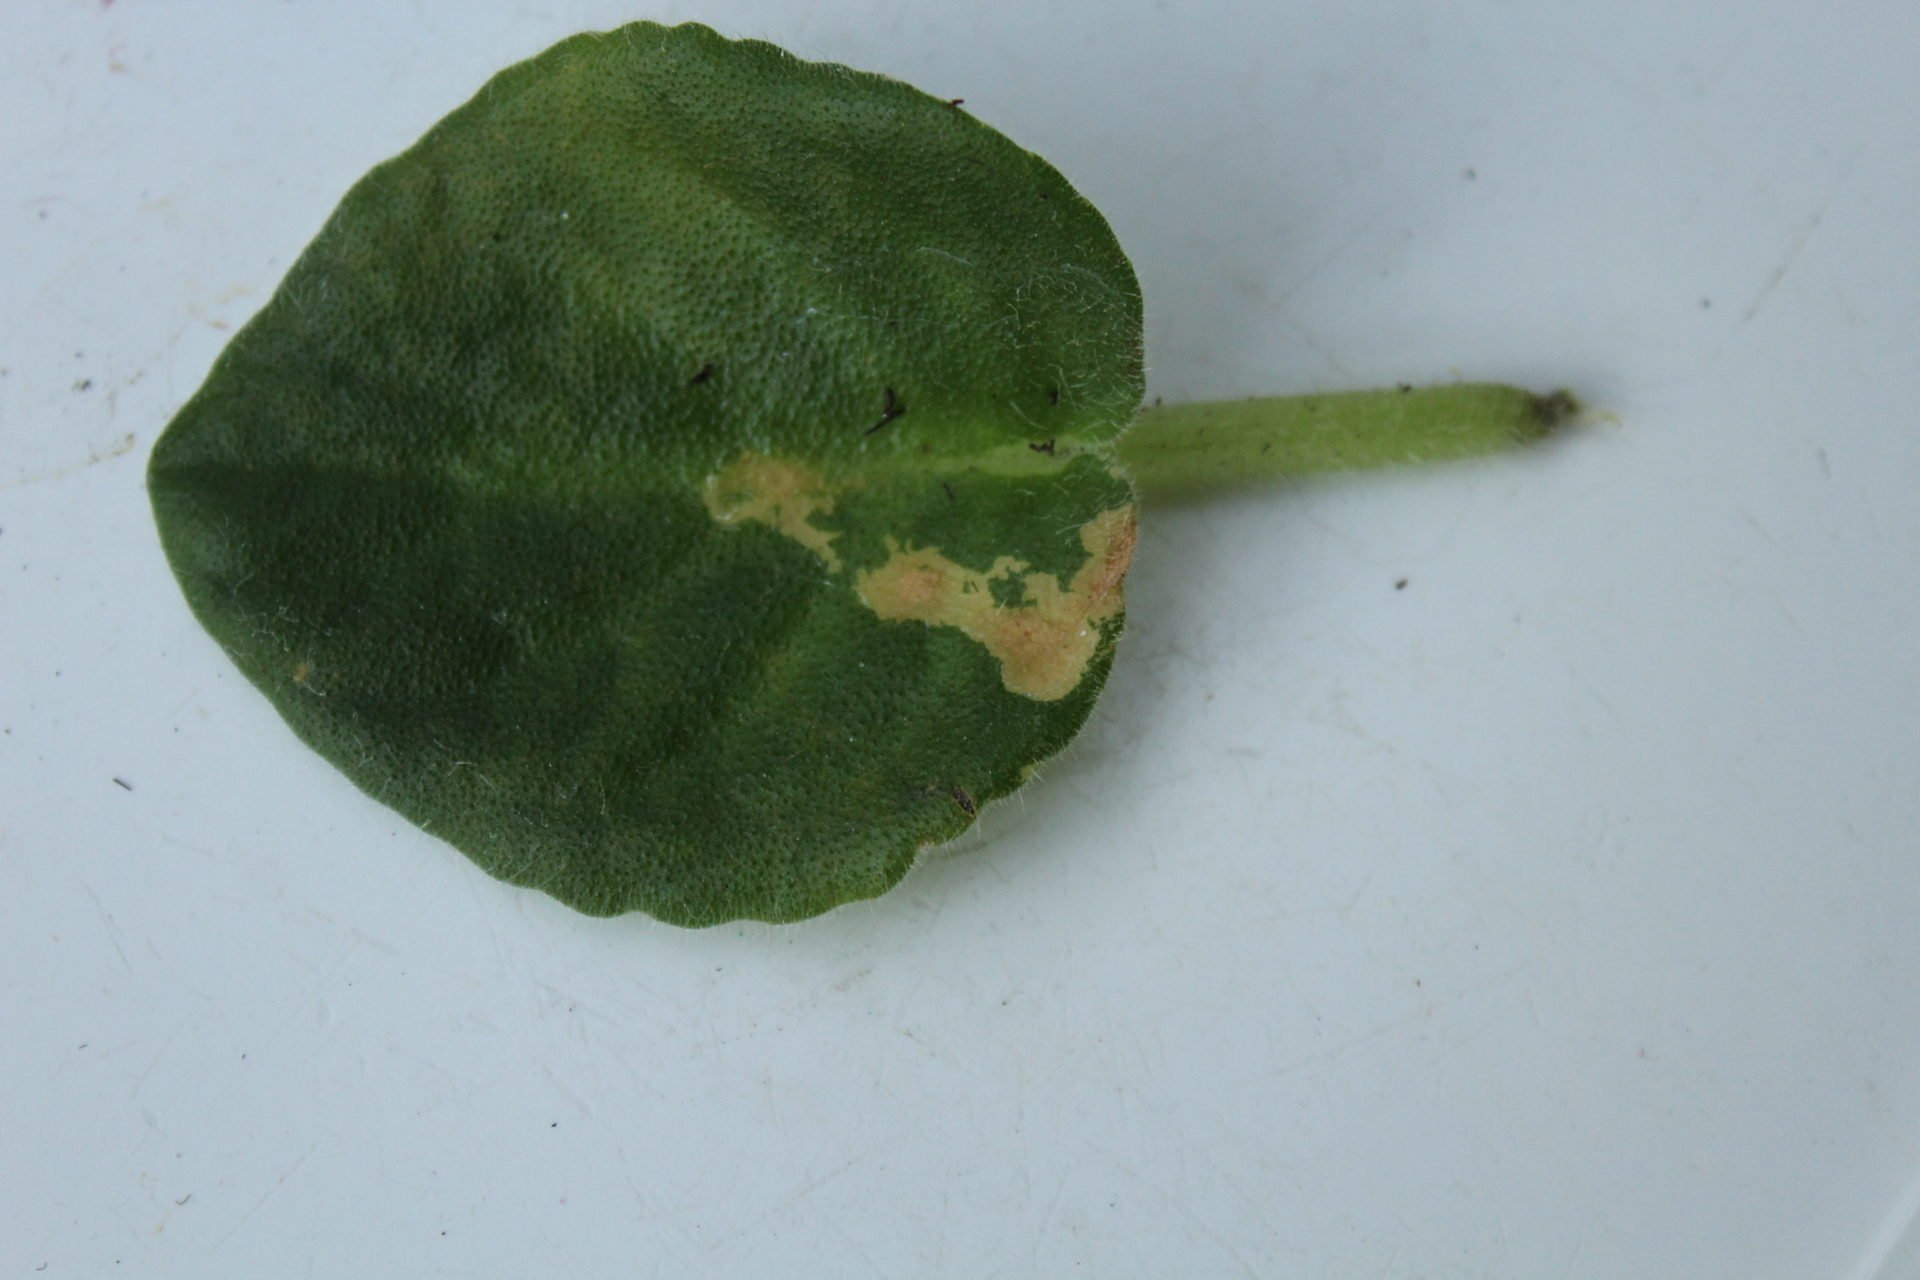 cold water damage on an African violet